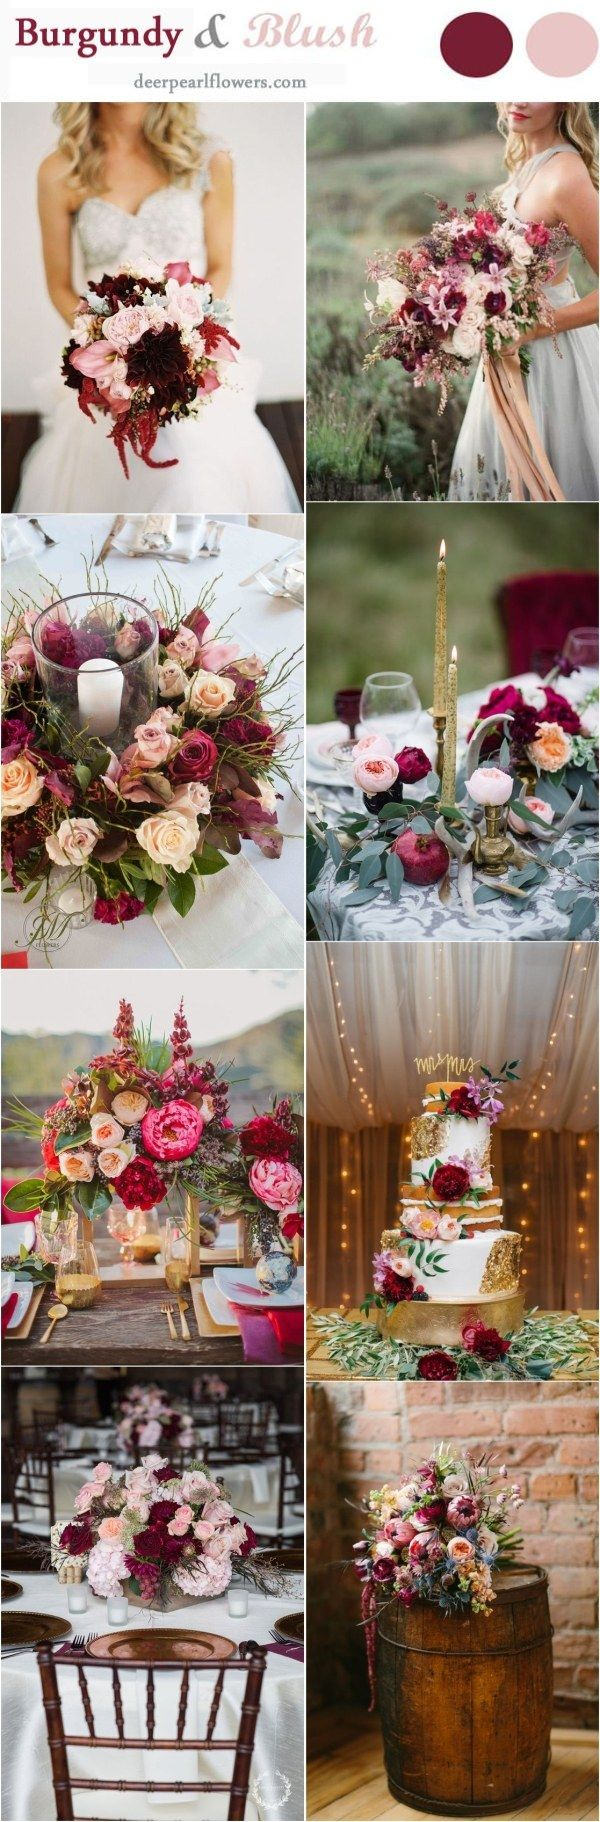 25 best ideas about fall wedding colors on pinterest maroon wedding colors wedding colors and autumn wedding themes - Fall Colors For A Wedding